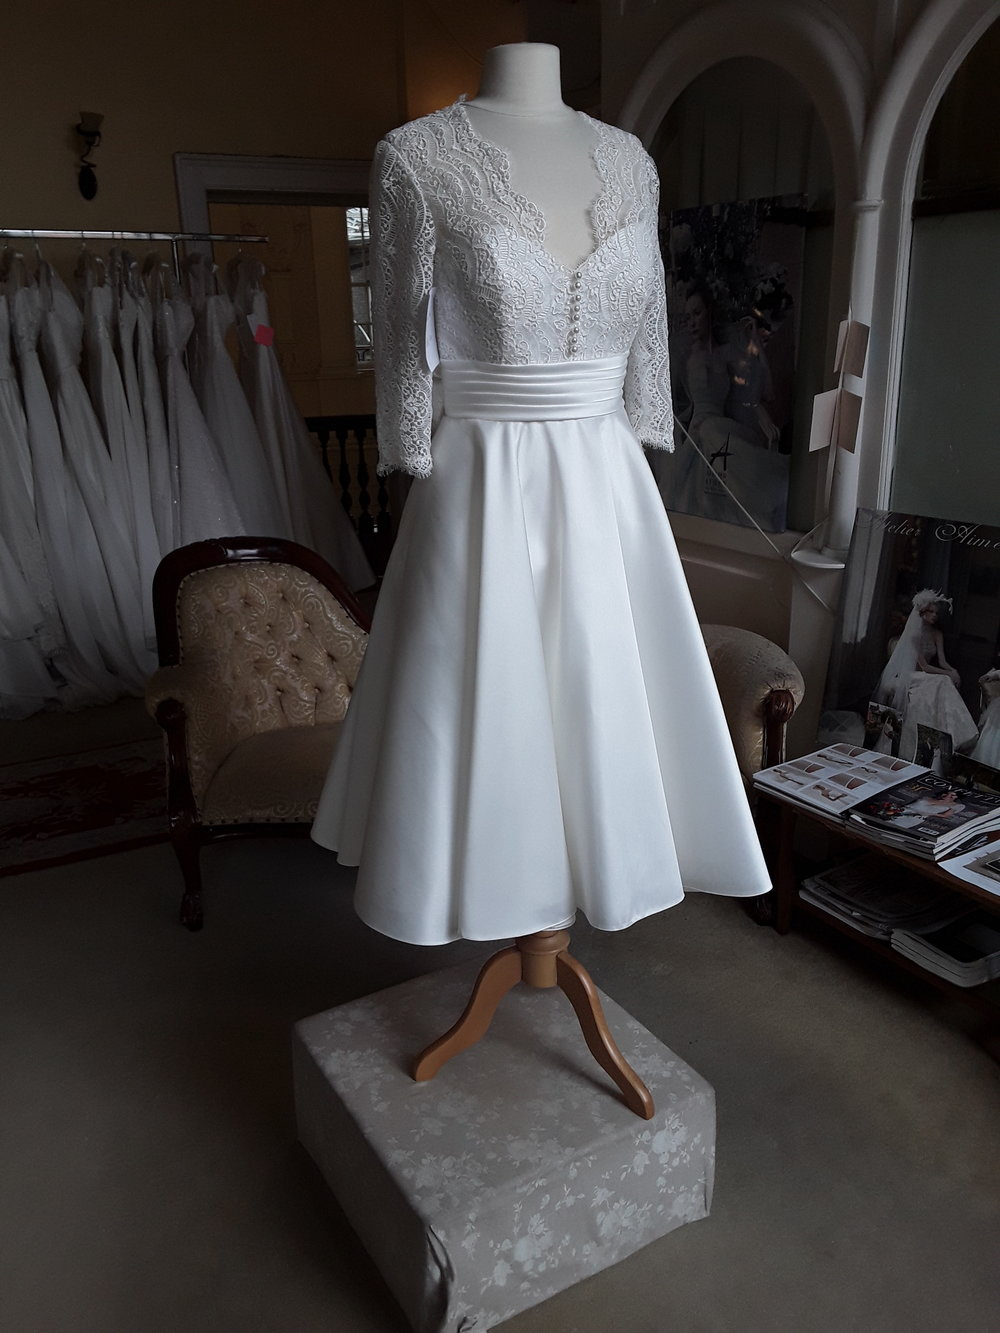 WHITE ROSE T - LENGTH SATIN/LACE DRESS  SIZE: 12  COLOUR: IVORY  WAS €1150 NOW €995  Ref: E118